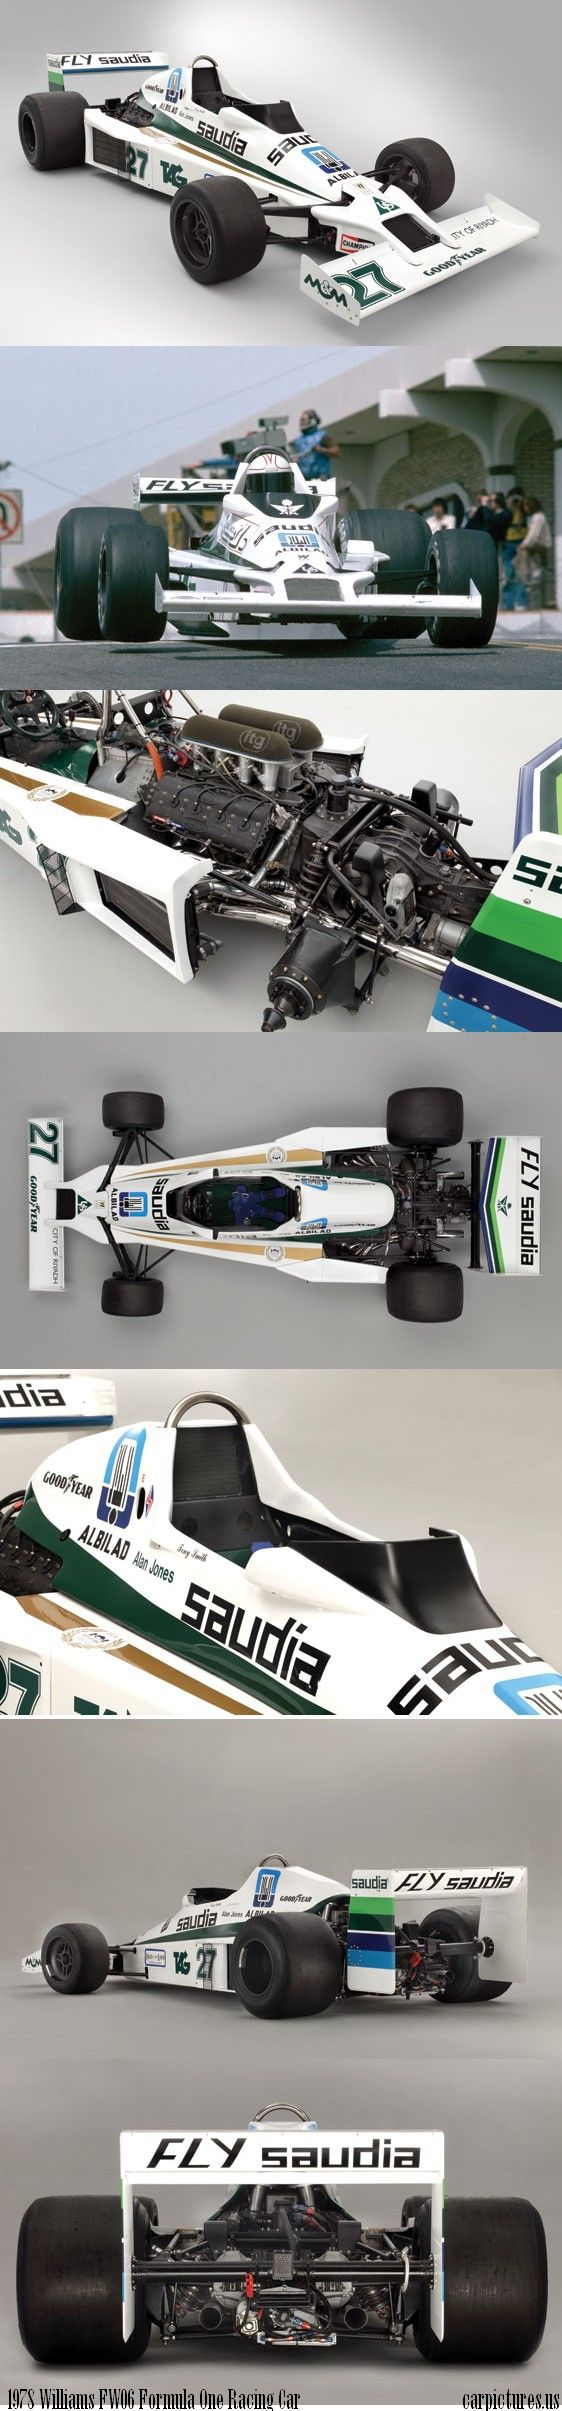 1978 Williams FW06 Formula One Racing Car. Credit: RM Auctions